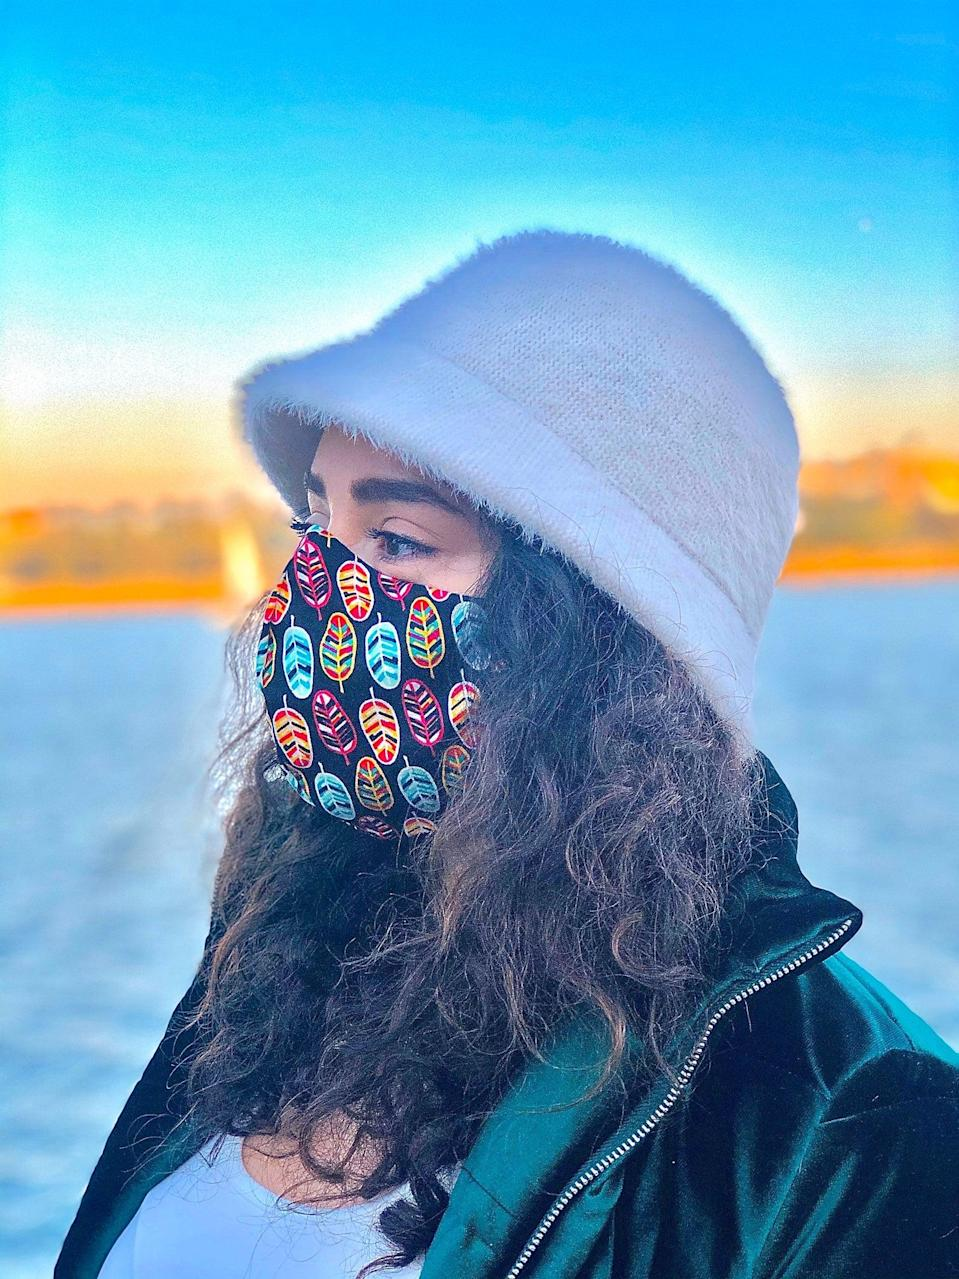 """<p>Adjust the wire in this <a href=""""https://www.popsugar.com/buy/Nose-Wire-Cotton-Face-Mask-575571?p_name=Nose%20Wire%20Cotton%20Face%20Mask&retailer=etsy.com&pid=575571&price=14&evar1=fit%3Aus&evar9=47488672&evar98=https%3A%2F%2Fwww.popsugar.com%2Ffitness%2Fphoto-gallery%2F47488672%2Fimage%2F47488679%2FNose-Wire-Cotton-Face-Mask&list1=face%20masks%2Cworkouts%2Ccoronavirus&prop13=api&pdata=1"""" class=""""link rapid-noclick-resp"""" rel=""""nofollow noopener"""" target=""""_blank"""" data-ylk=""""slk:Nose Wire Cotton Face Mask"""">Nose Wire Cotton Face Mask</a> ($14) to fit your nose snugly. This mask also comes with a filter pocket, <a href=""""https://www.popsugar.com/fitness/what-to-use-as-filters-in-face-mask-47450335"""" class=""""link rapid-noclick-resp"""" rel=""""nofollow noopener"""" target=""""_blank"""" data-ylk=""""slk:which you can use if you'd like"""">which you can use if you'd like</a>, but it may make it more difficult to breathe while working out.</p>"""